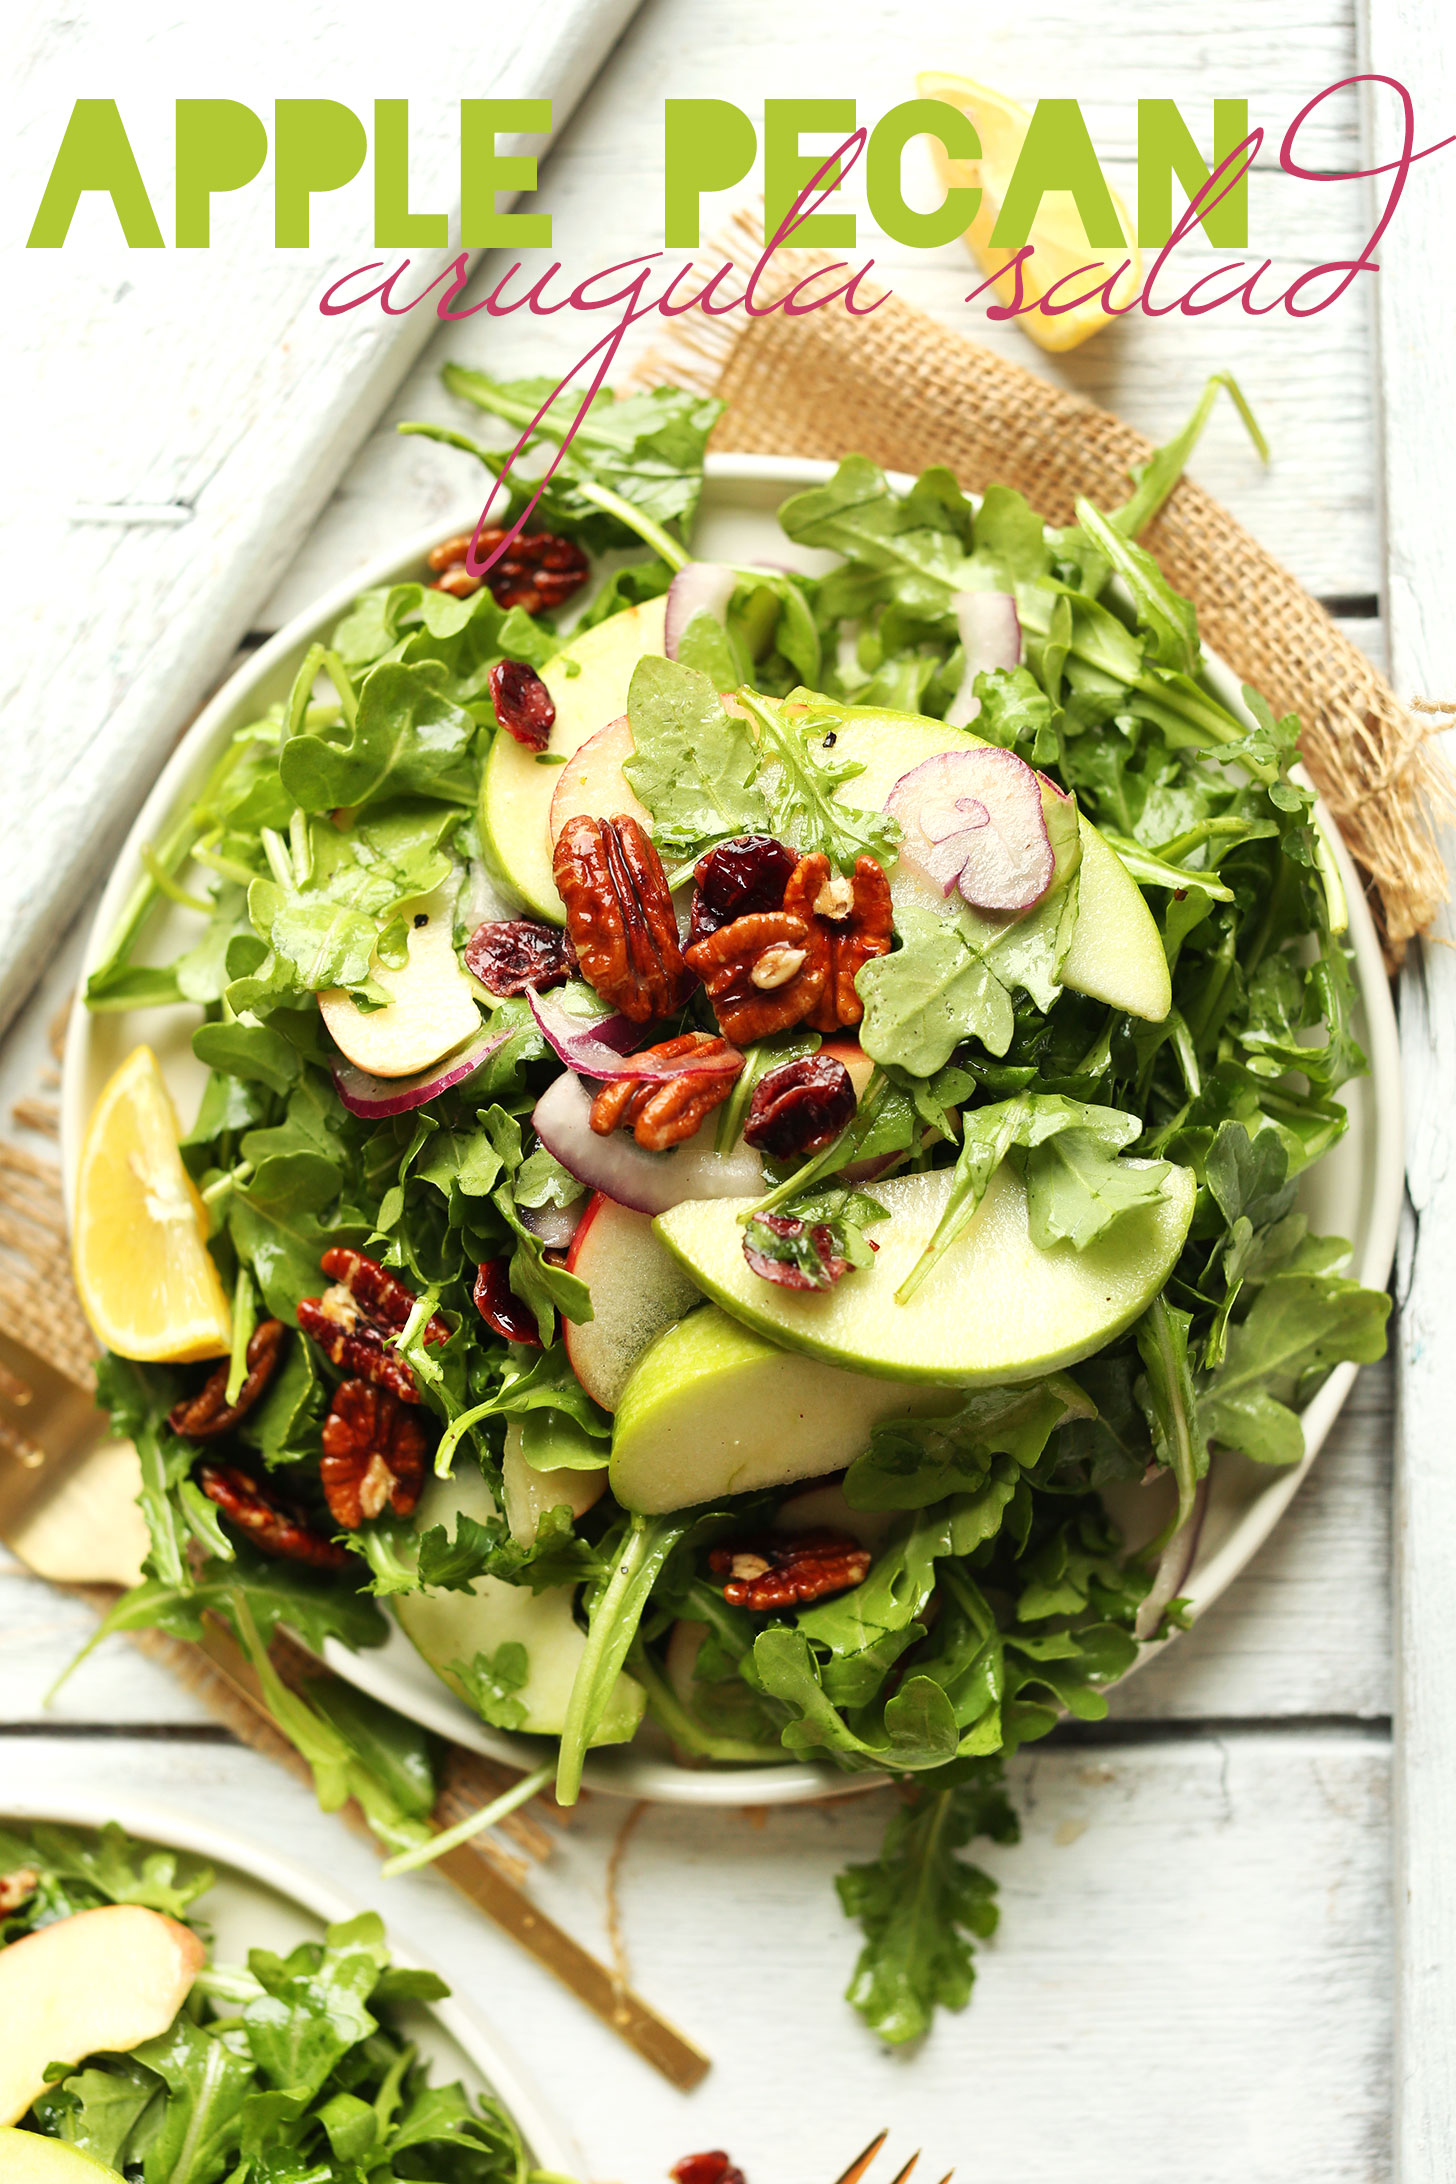 Apple Pecan Arugula Salad Minimalist Baker Recipes